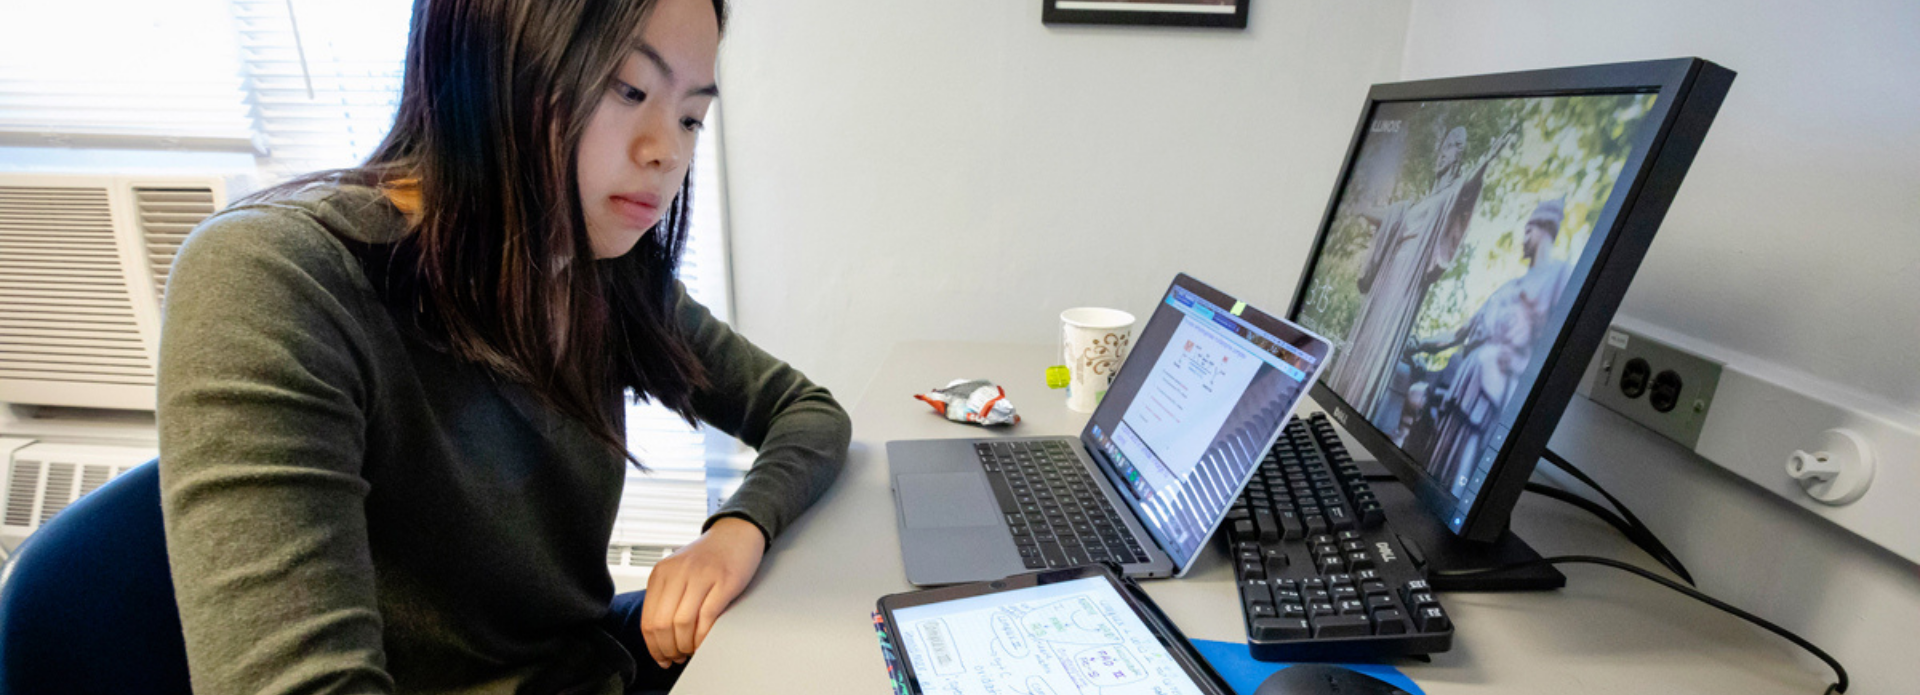 student sits and works at her desk with multiple computer screens